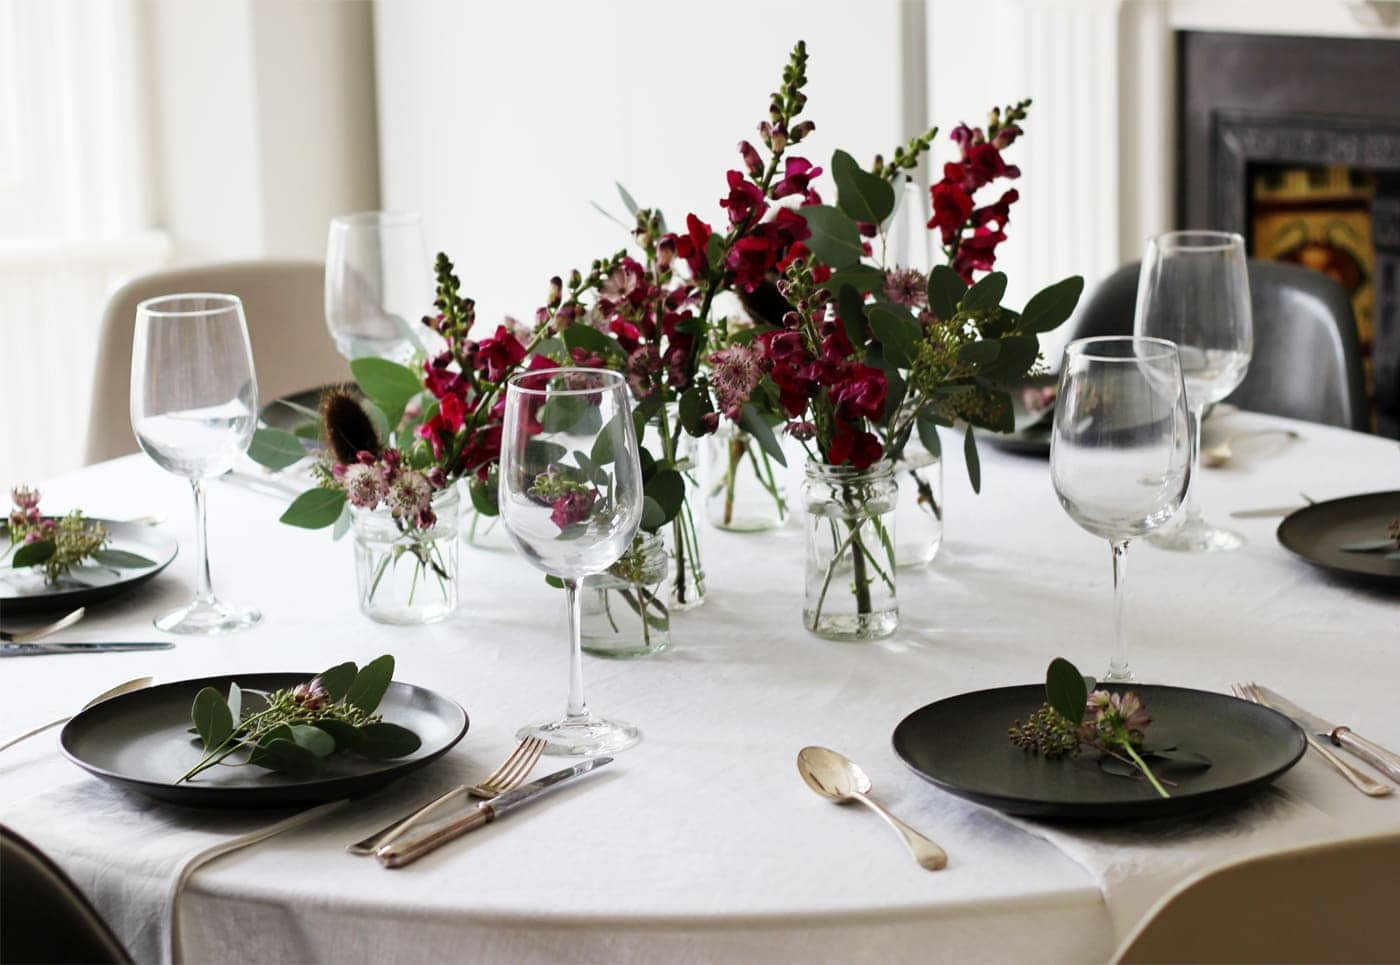 West elm 12 styled days of Christmas | A quiet style 6